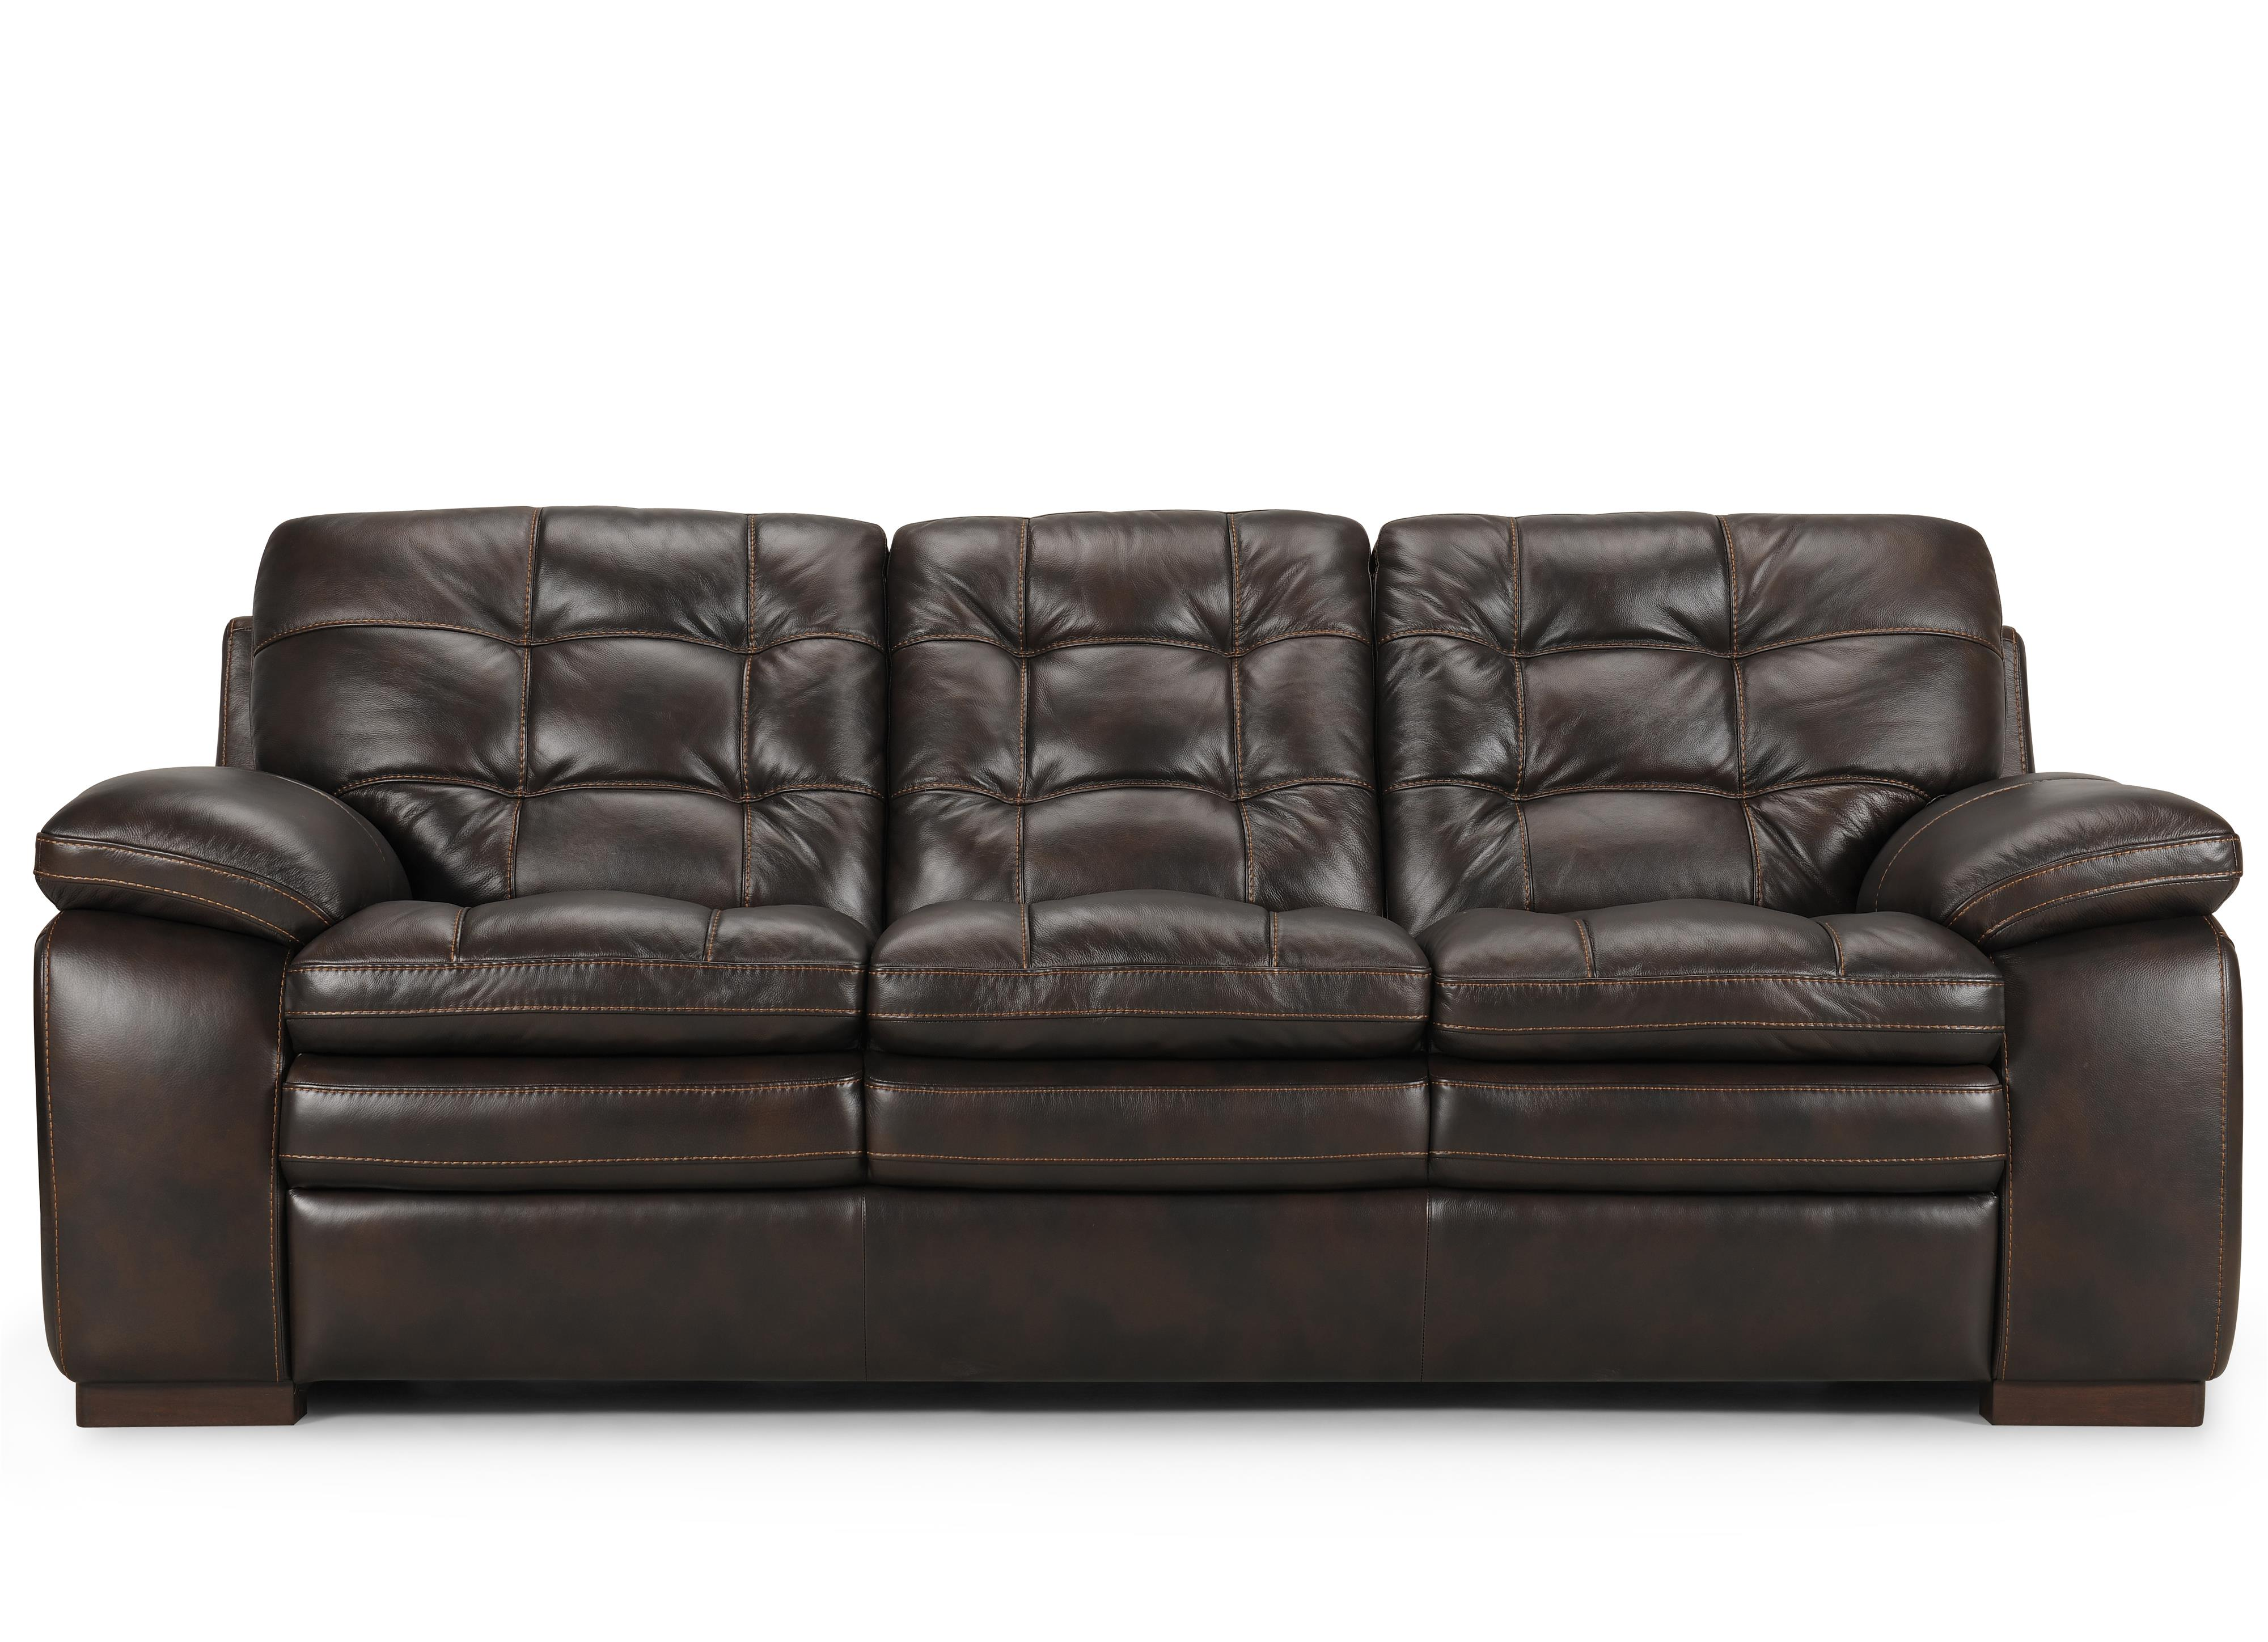 30934 Sofa by Violino at Furniture Superstore - Rochester, MN